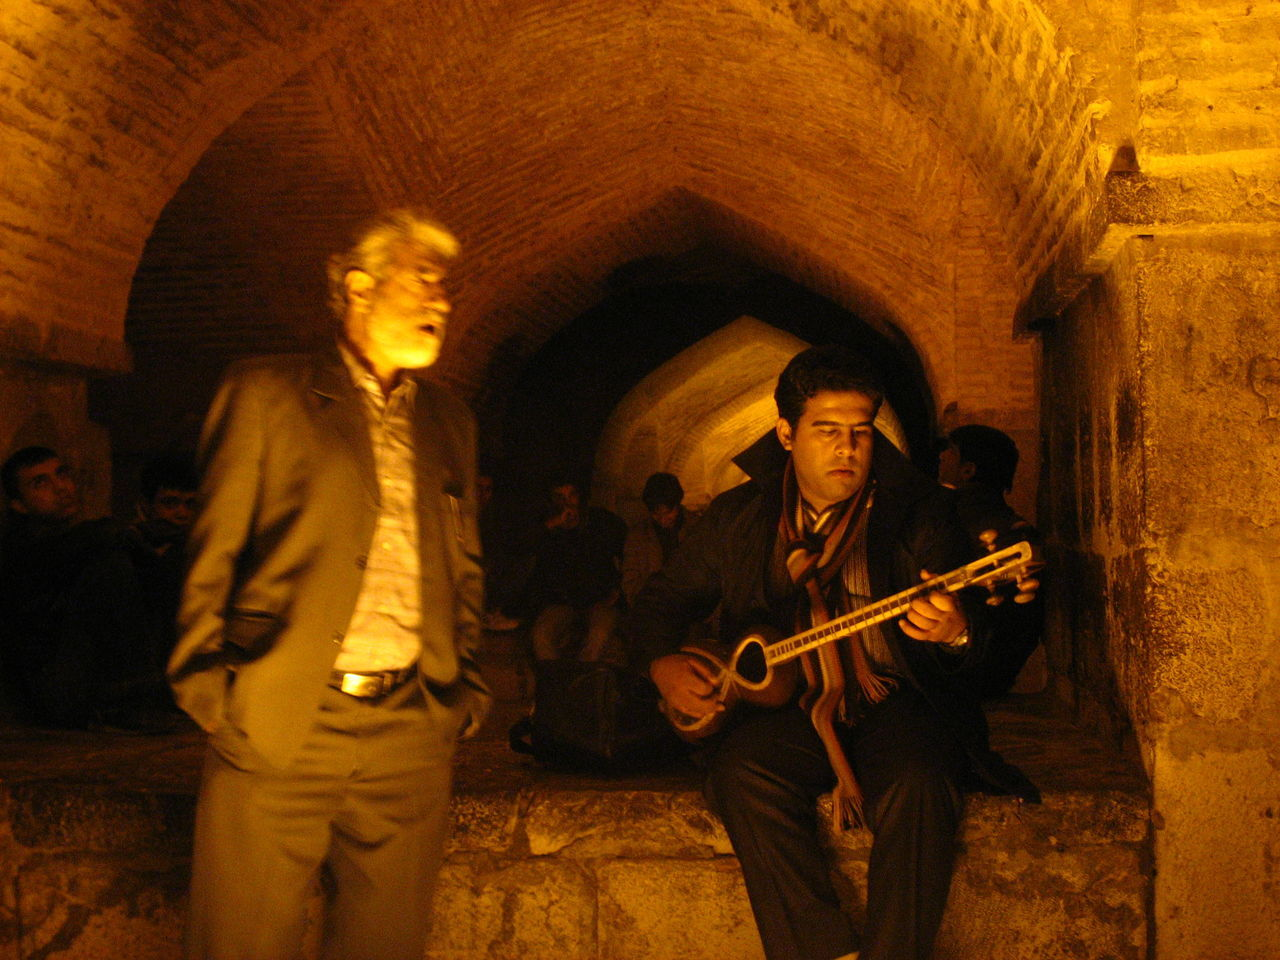 Street singing under KHAJOO Bridge in ISFAHAN, IRAN. Abstract Freedom Canon No Comment Iran Landscape People Portrait Lifestyle Emotion Humans Abstract Photography Human HUMANITY Roud Portraits Human Face Street Streetphotography Street Photography Street Art Music Culture